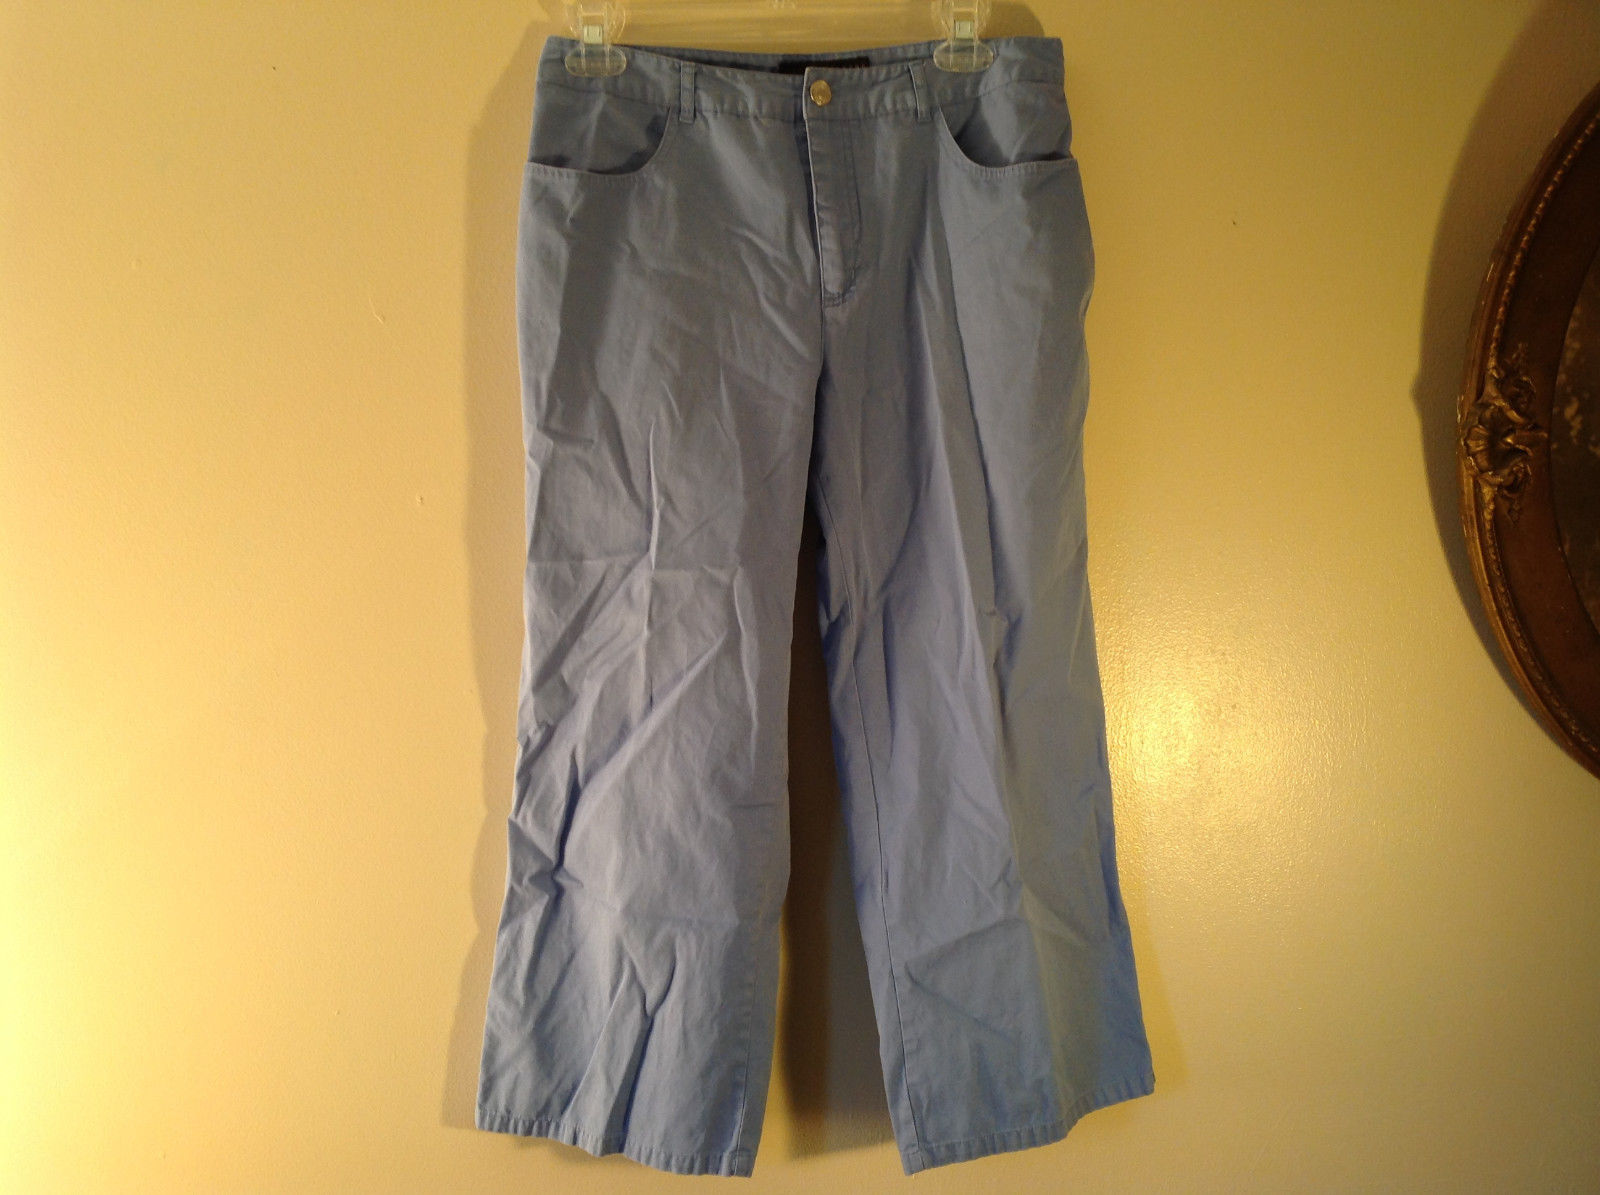 Geoffrey Beene Sport Light Blue Jean Capri Pants Size 6 Excellent Condition